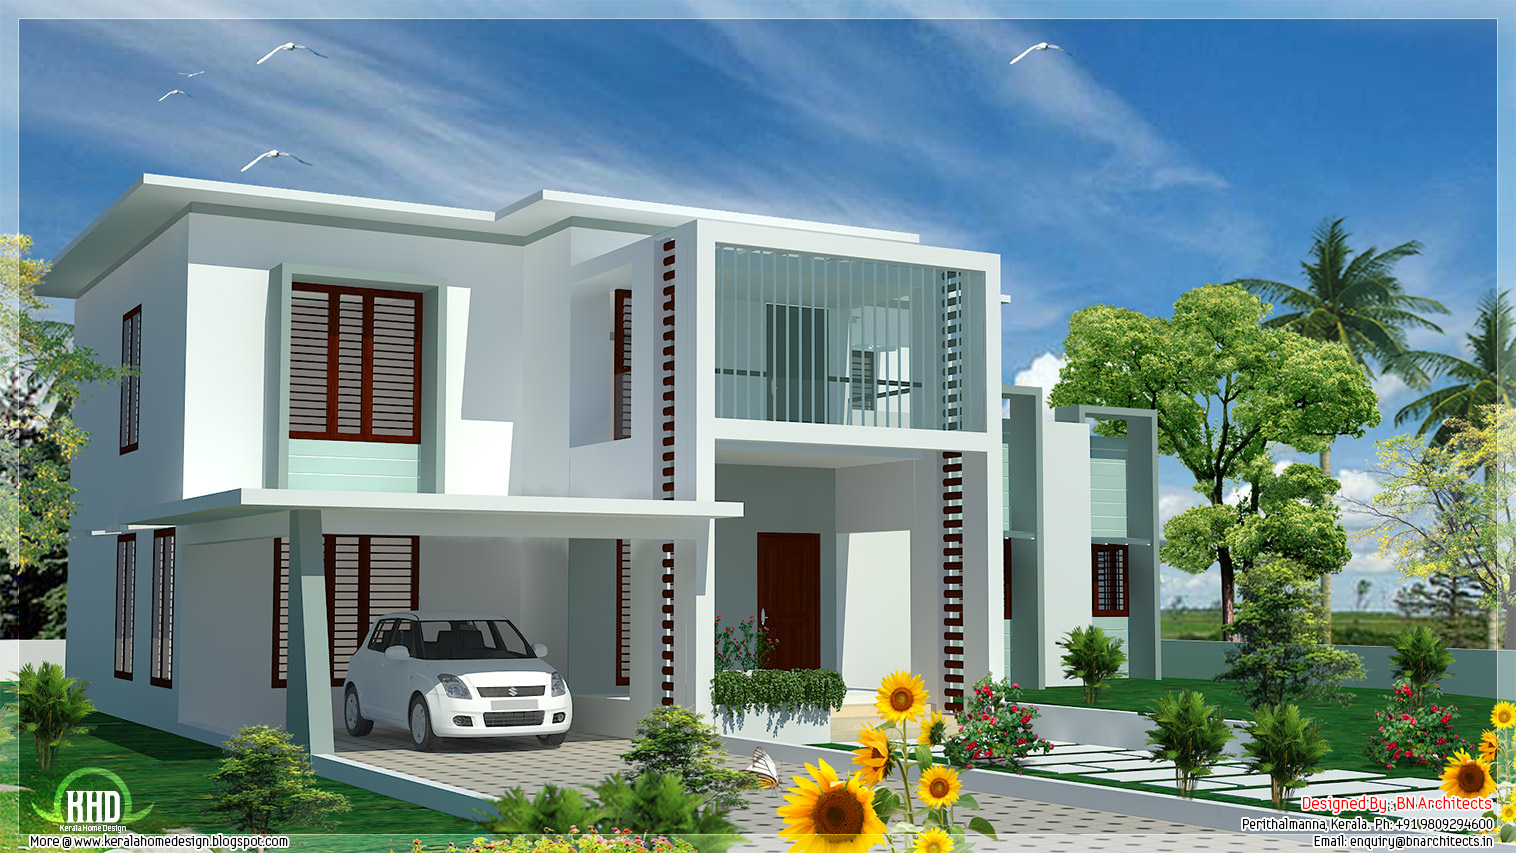 house plans 3 bedroom townhouse for html with Modern Flat Roof Home on A25aab504a569d65 Flat Roof Modern House Designs Narrow Flat Roof Houses Modern together with Double Storey House Plans With Balcony also 4c6873c4af230da7 Single Story Mediterranean House Plans Single Story Ranch House Plans additionally Beautiful Modern Home Exterior Design as well Pratto.